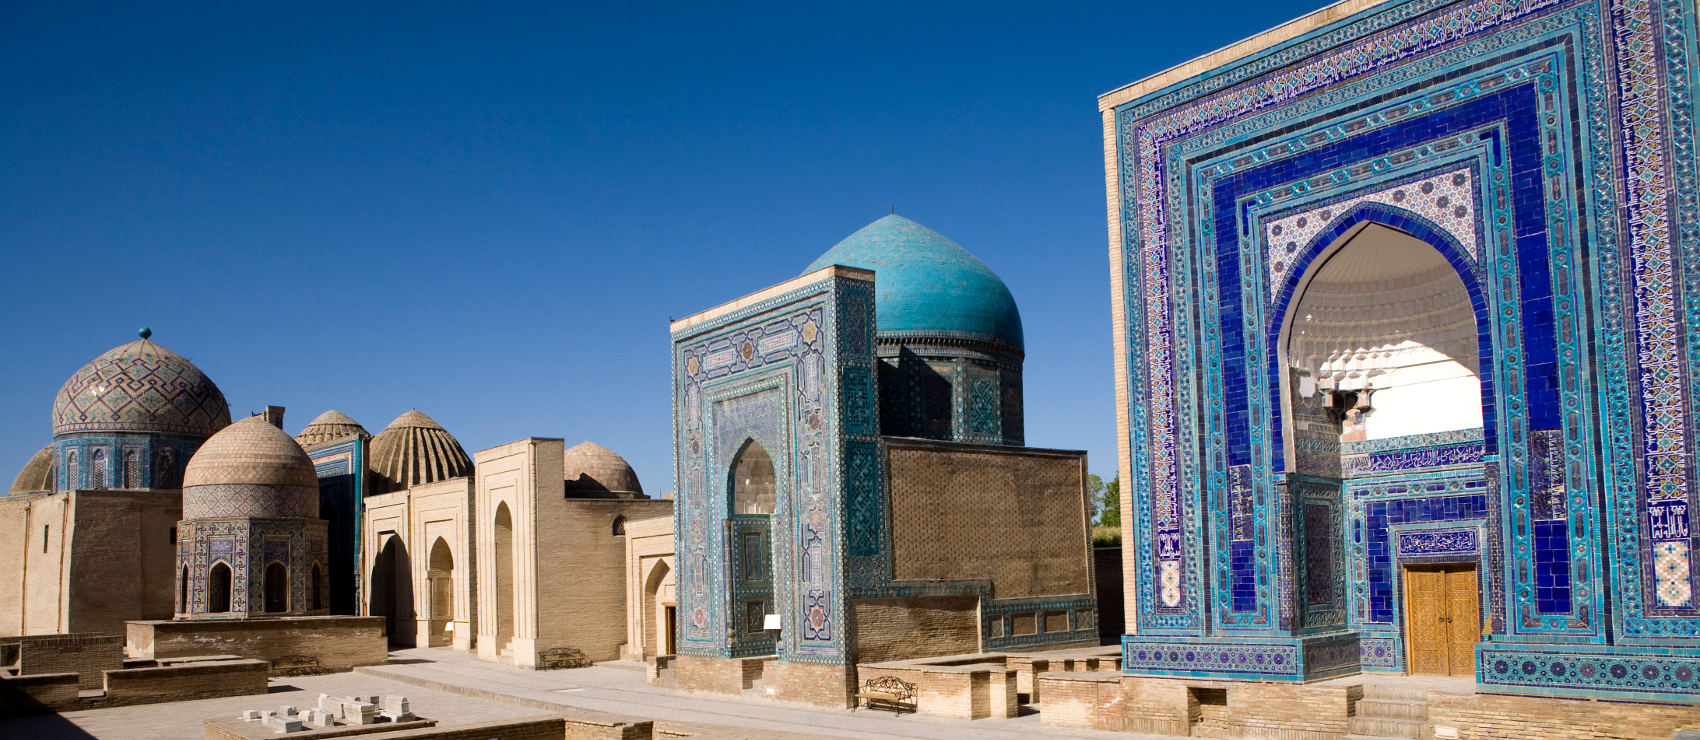 Encompassing Central Asia: Tour of the Stans